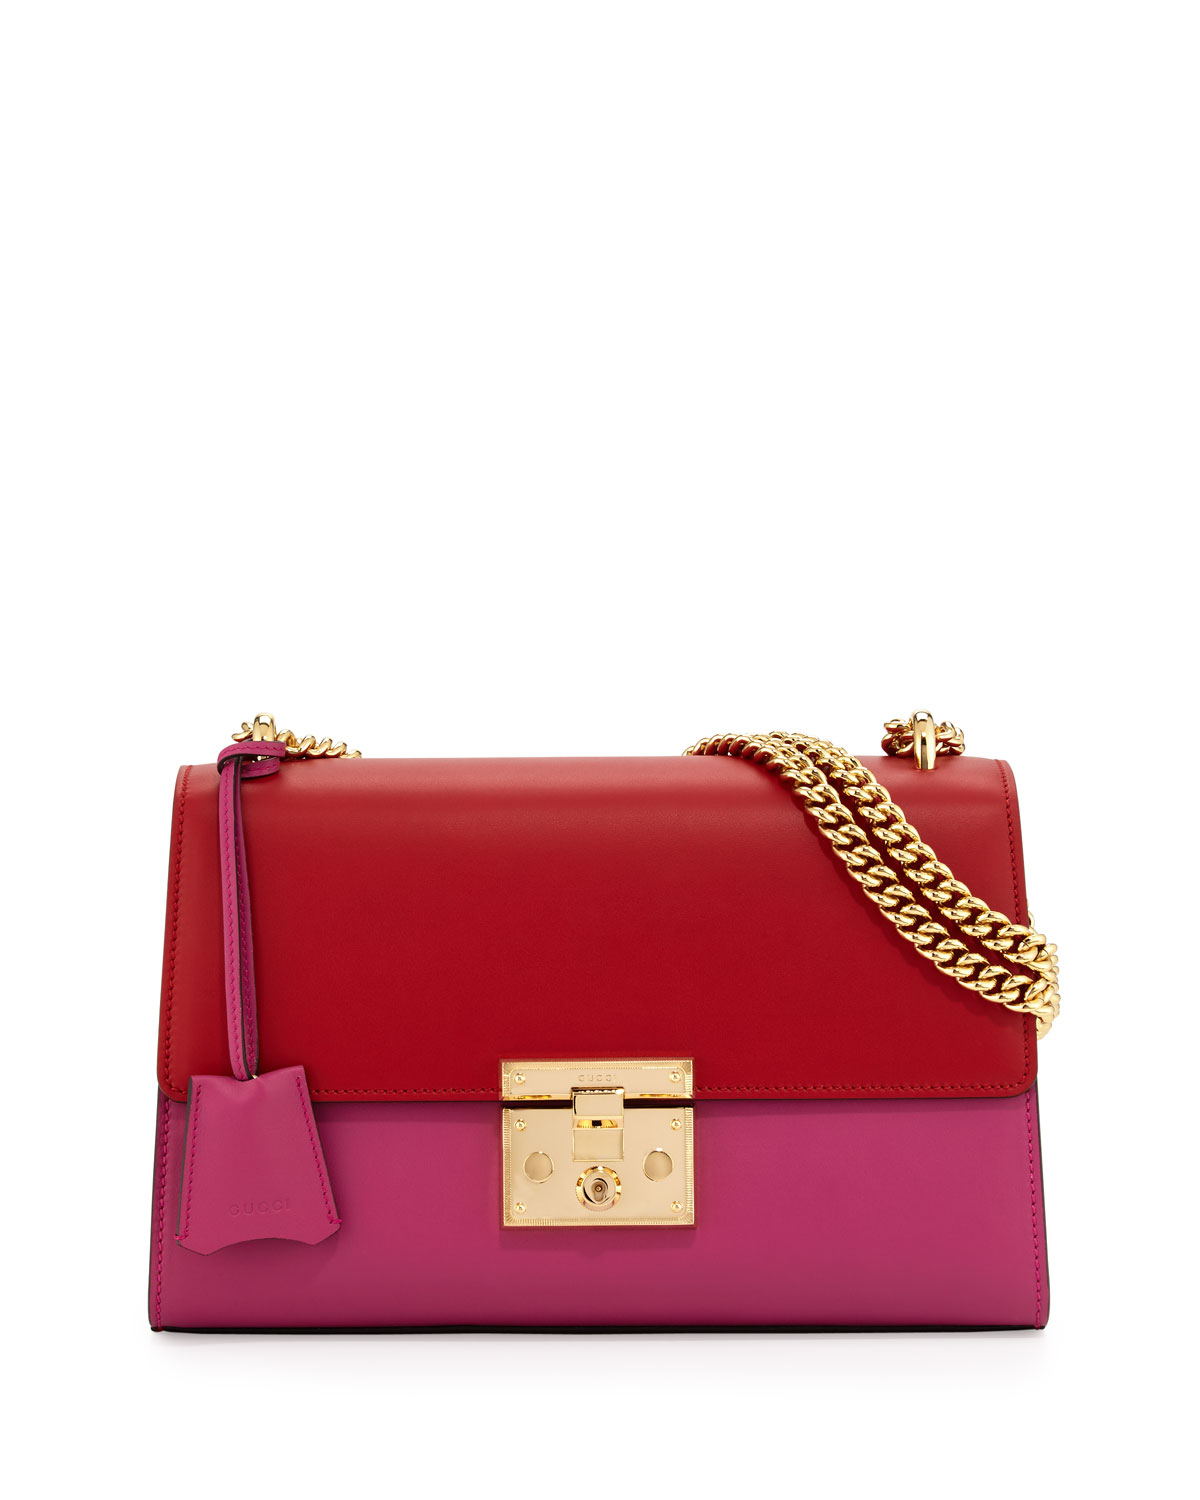 2eb48d09caa1 Gucci Linea C Leather Lock Shoulder Bag, Red/Pink | Neiman Marcus